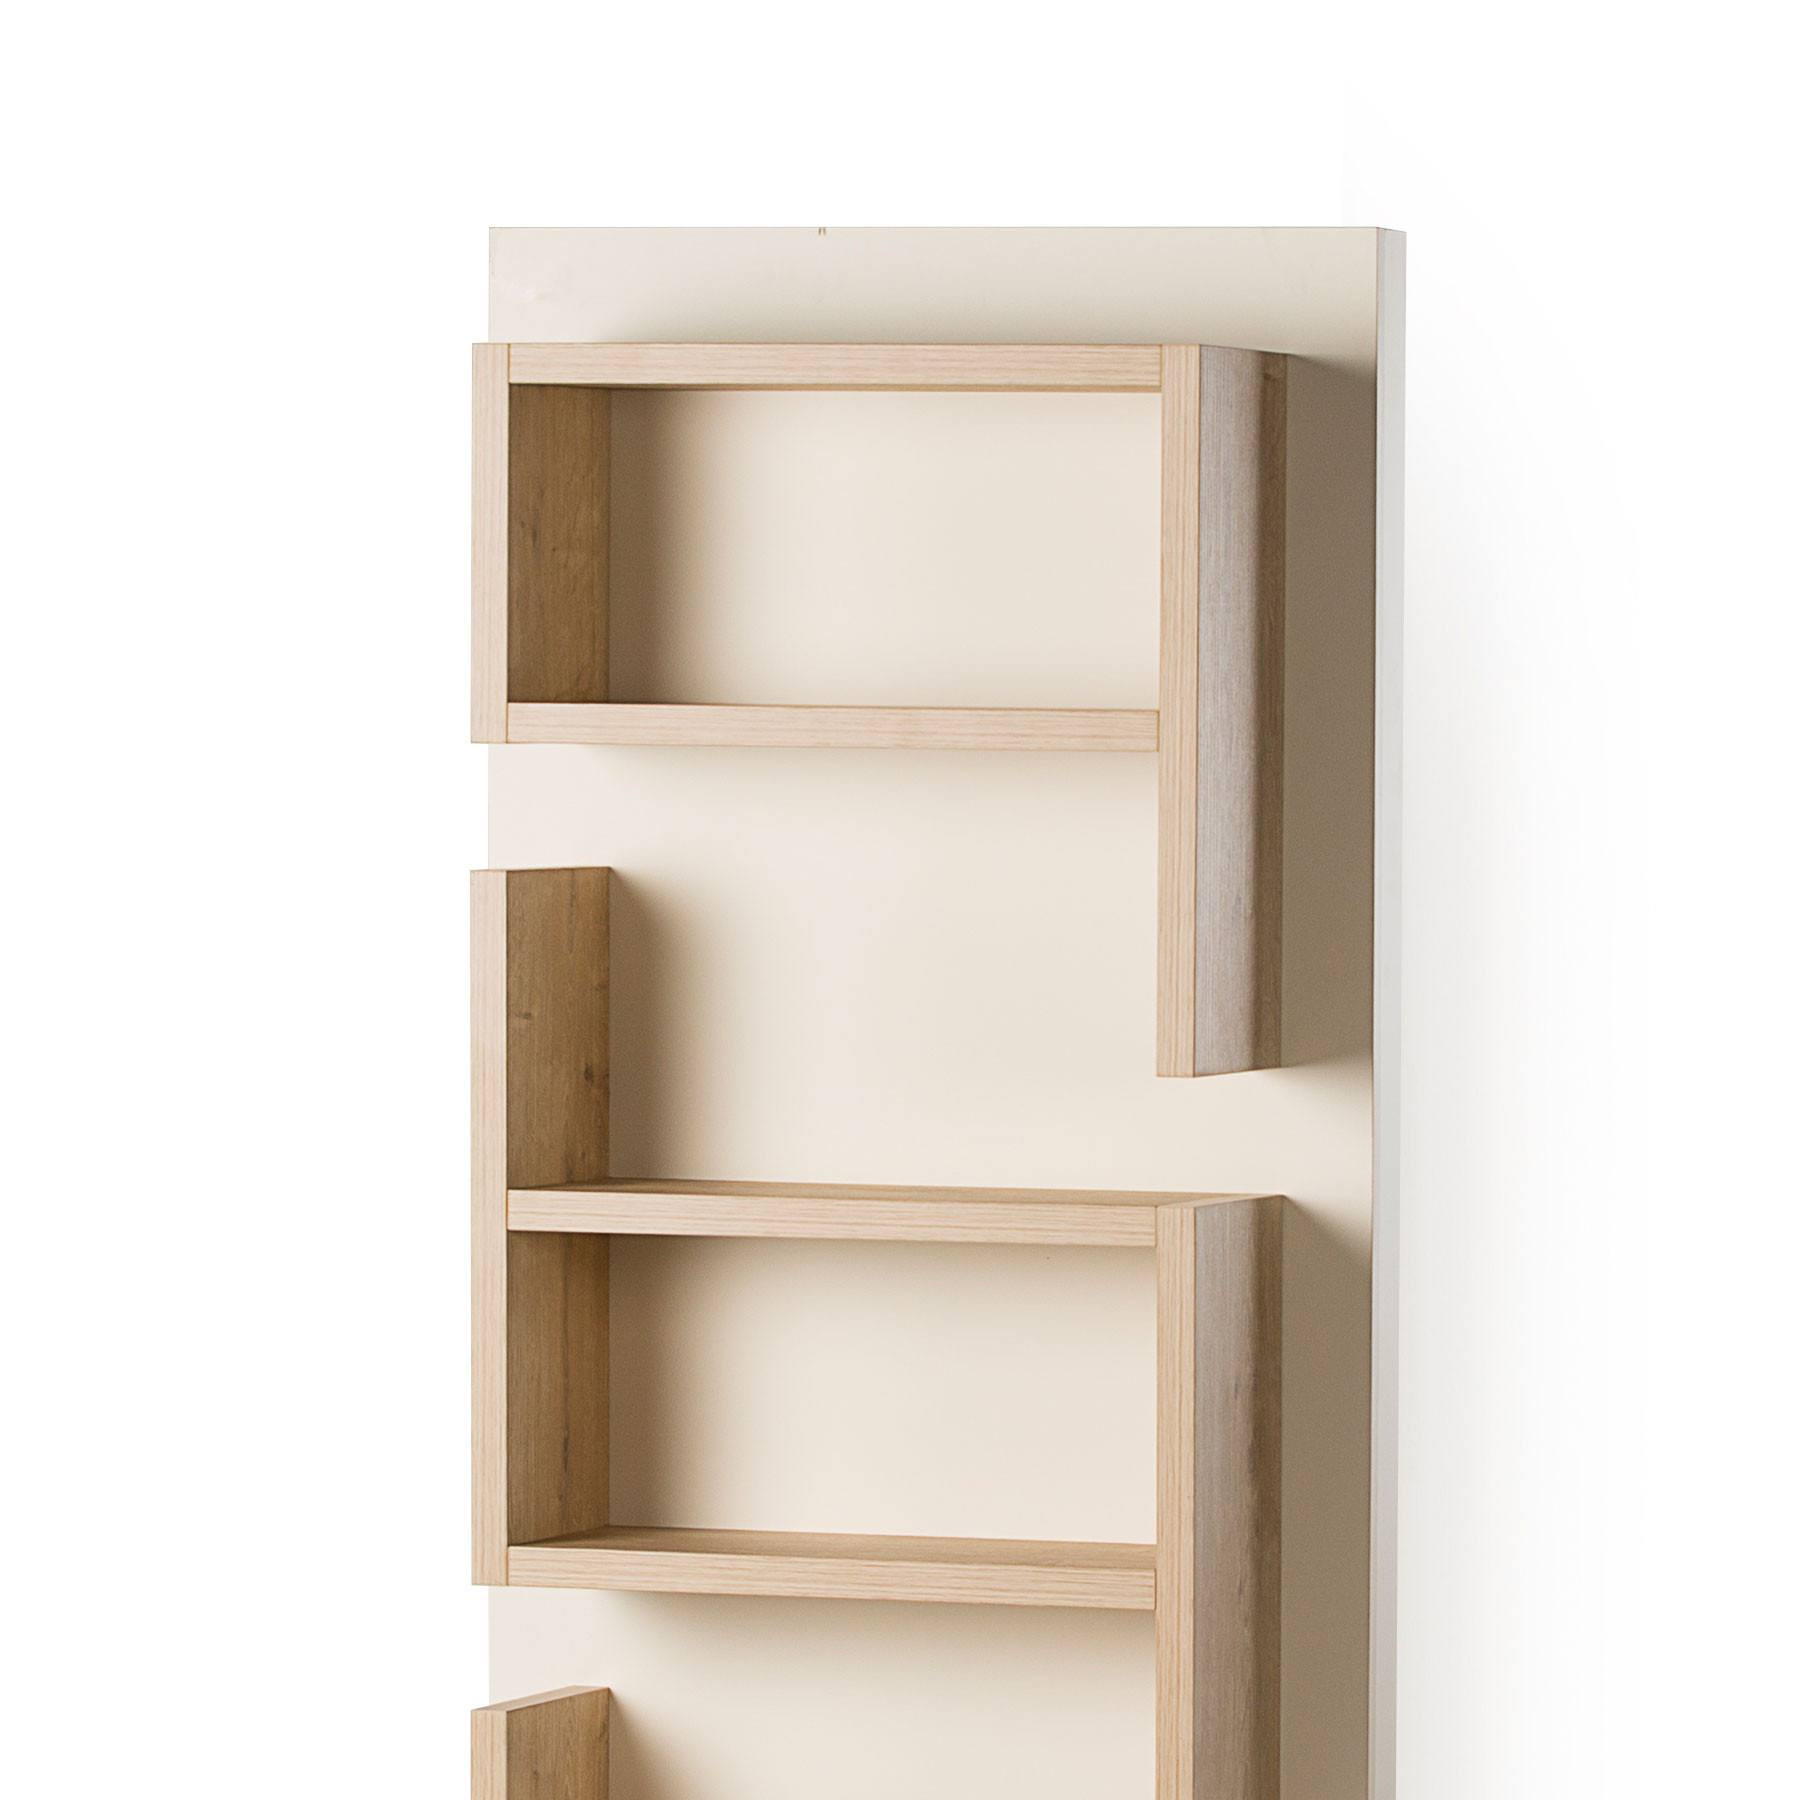 Best ideas about Vertical Wall Shelf . Save or Pin UK CF Fusion Oak and Cream Vertical Wall Shelf Unit Now.